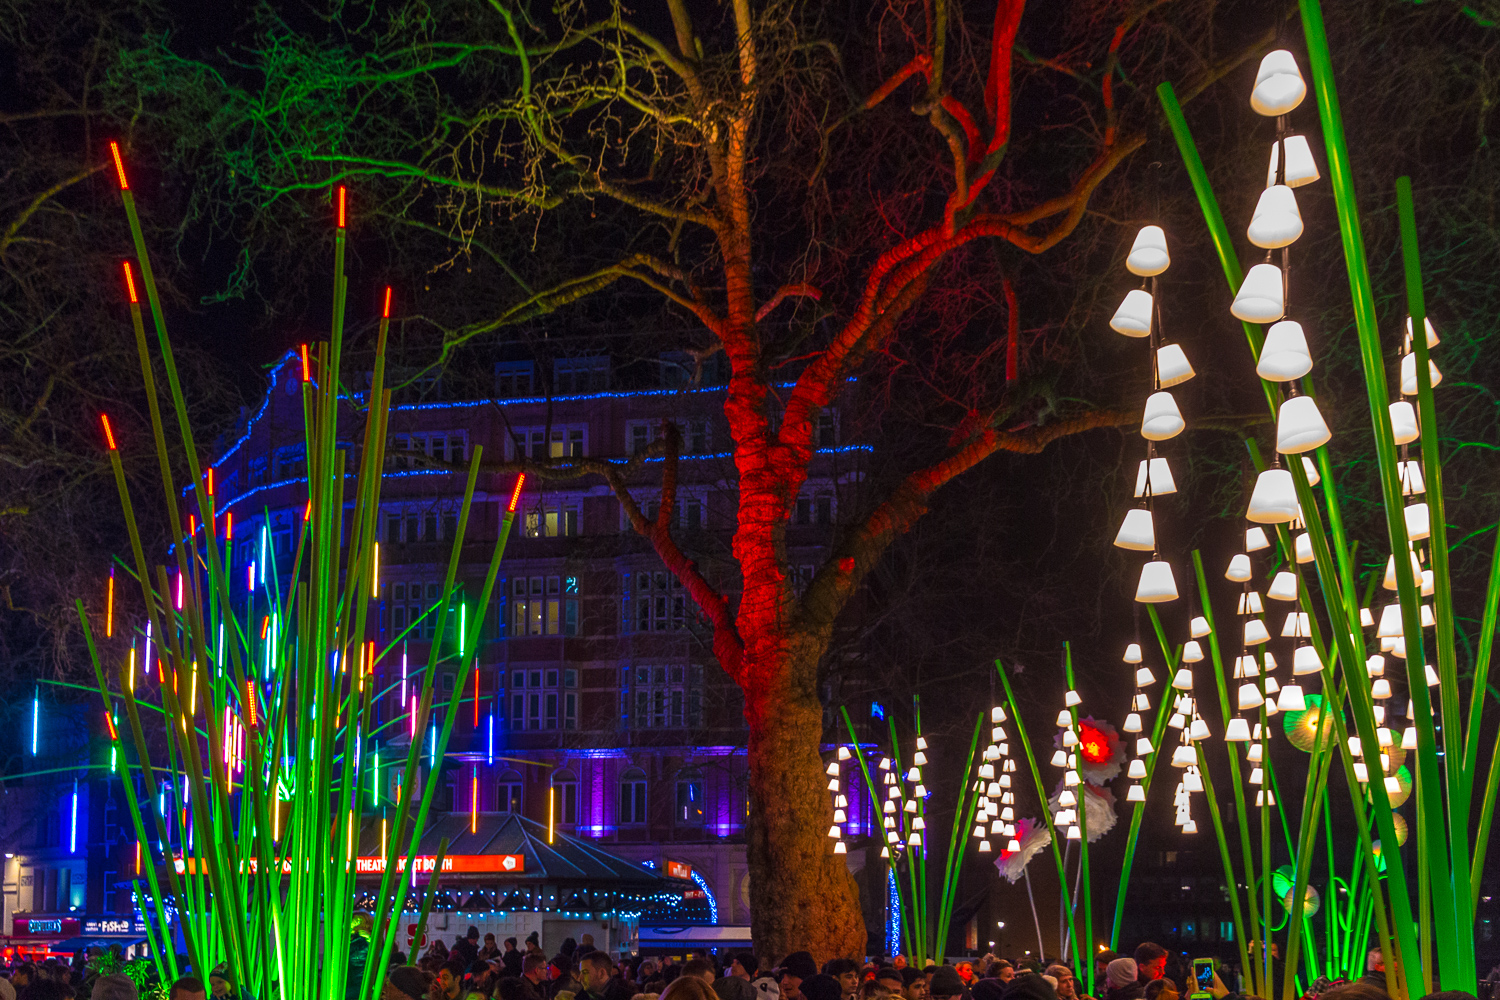 https://upload.wikimedia.org/wikipedia/commons/5/50/Lumiere_London_2016.jpg